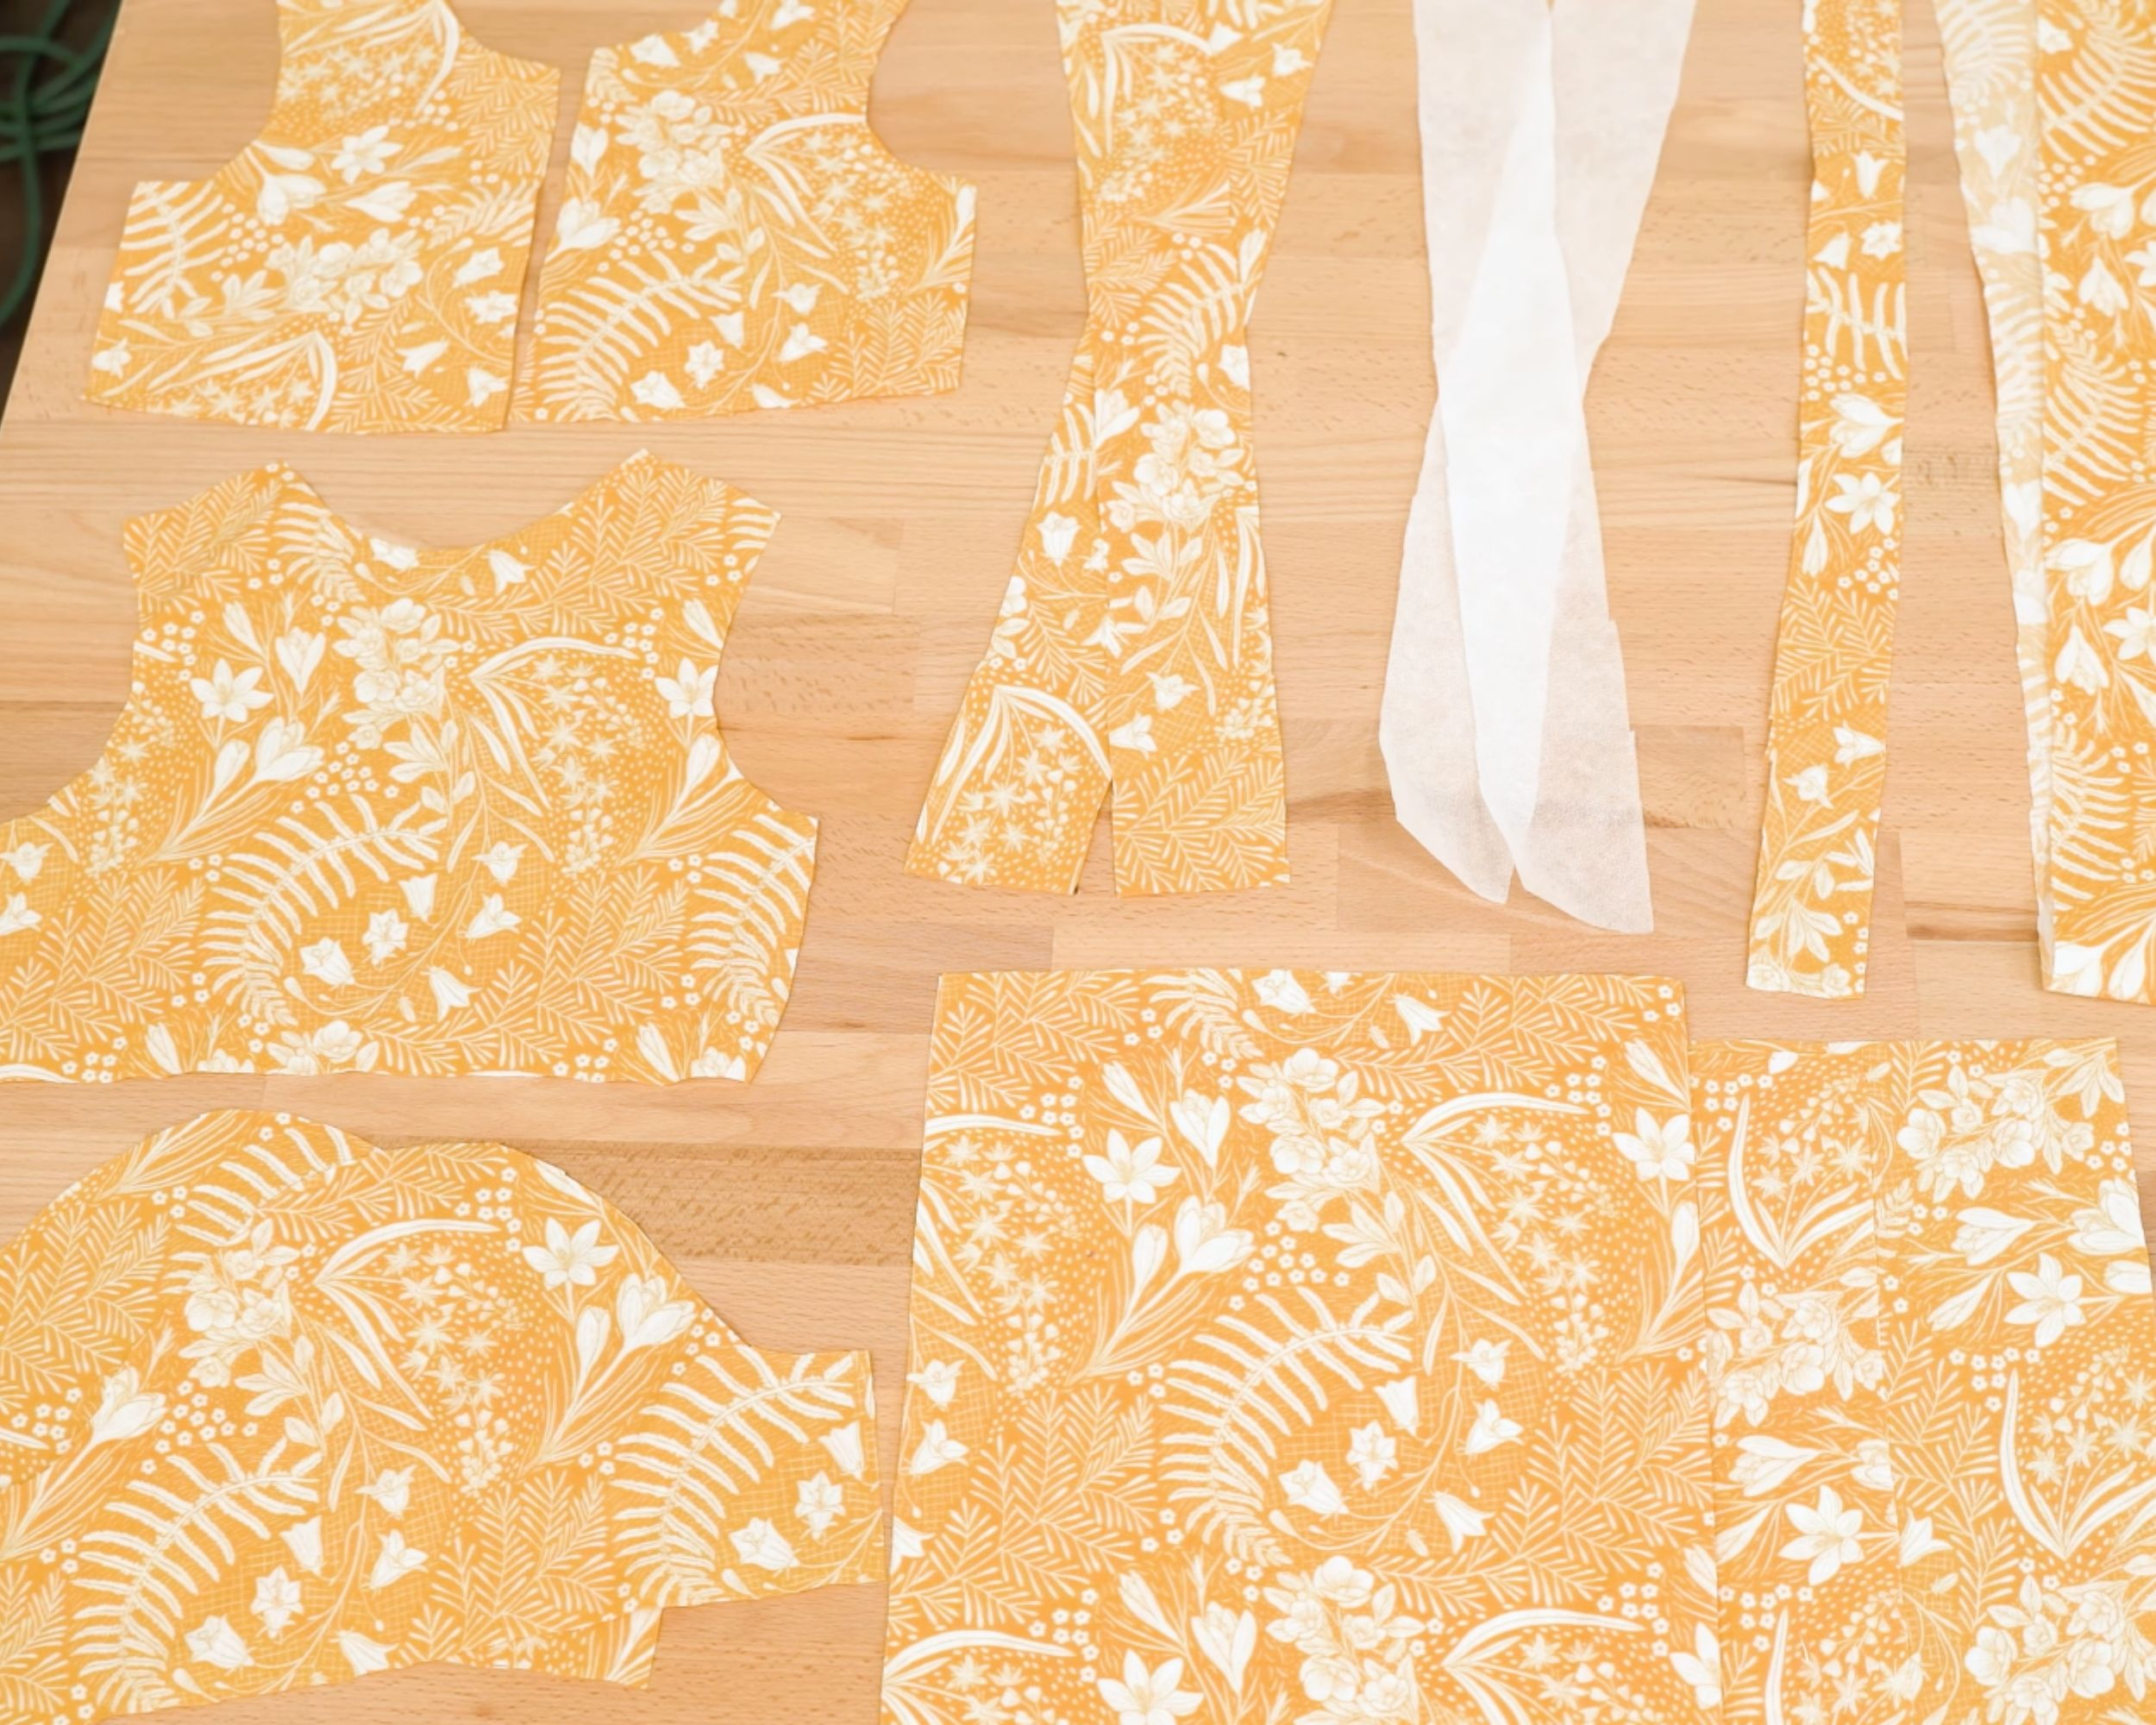 All pattern pieces for dress